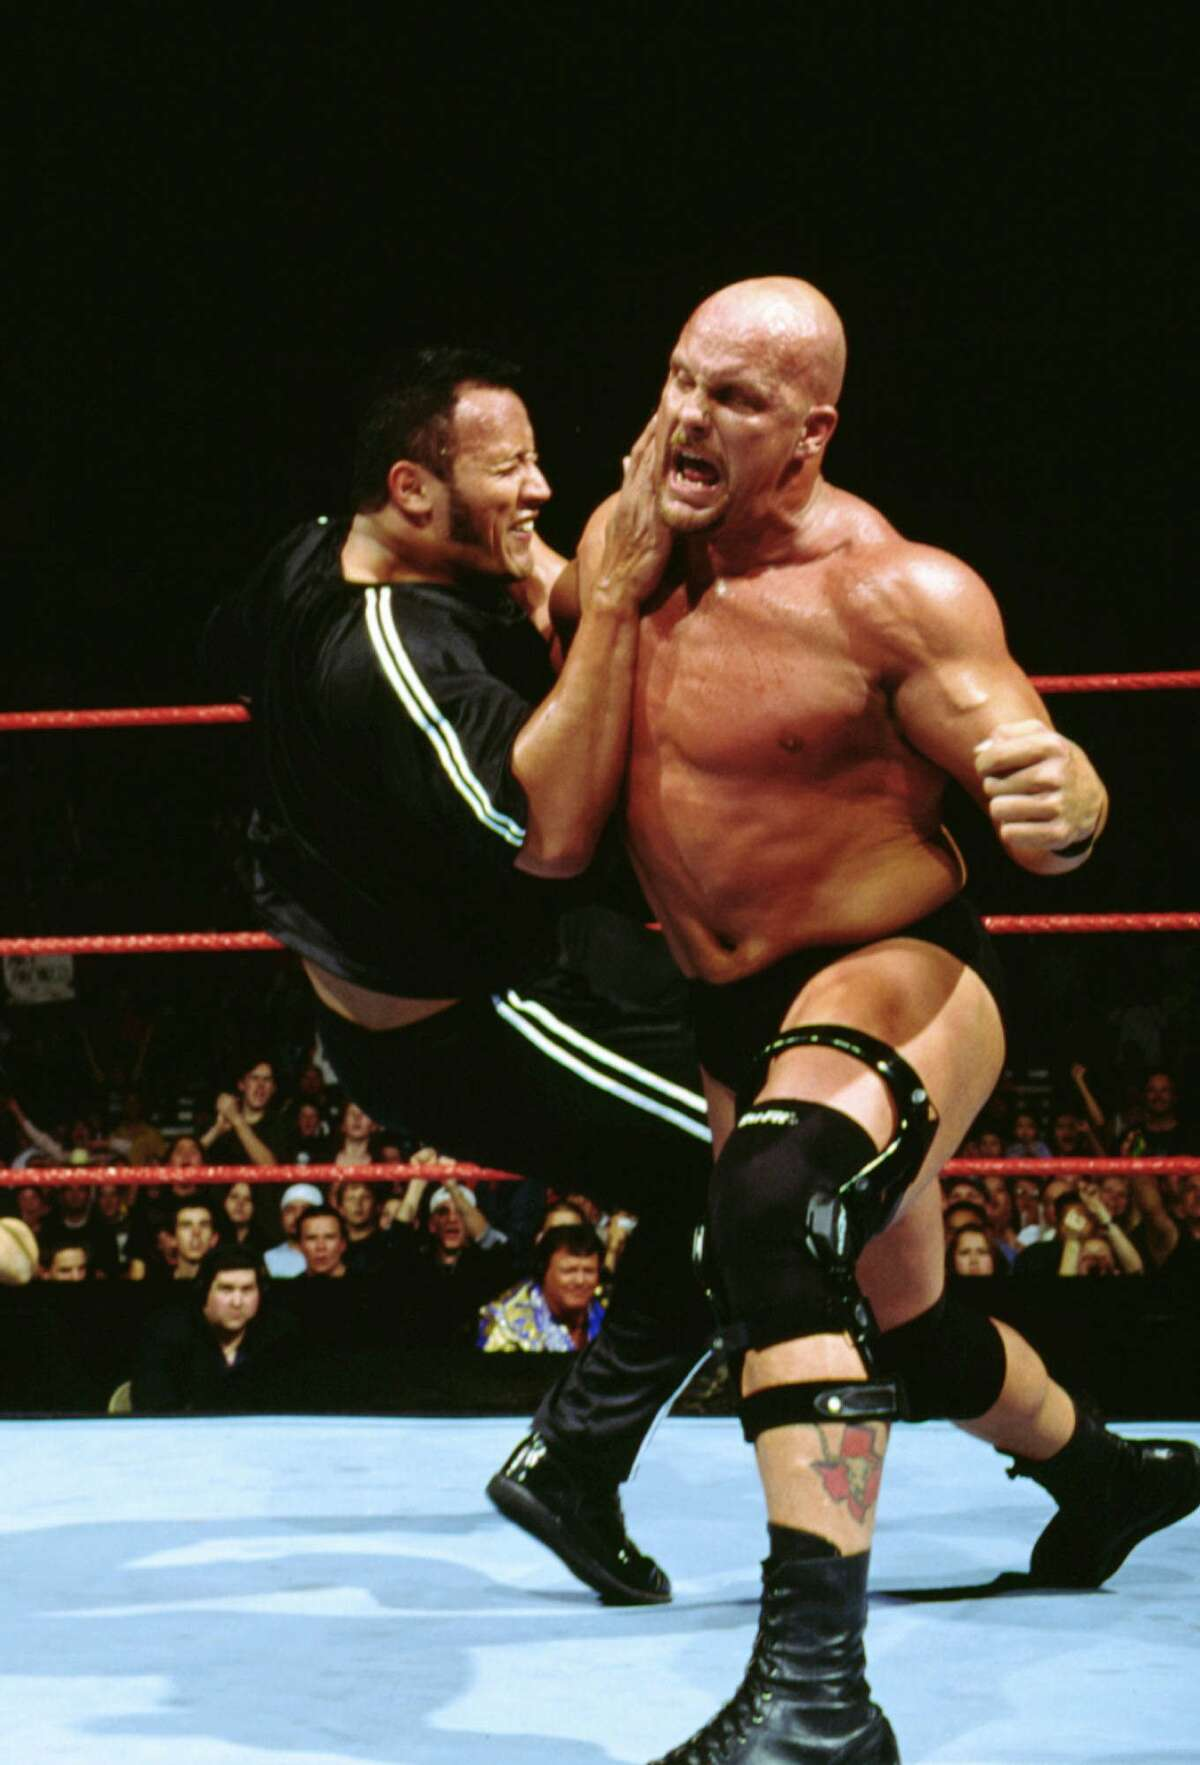 Stone Cold Steve Austin Steve James Anderson was born in Austin in 1951. Austin is a six-time WWF/WWE champion, also having won two intercontinental and four tag team championships in those same years making him one of only five WWF/WWE Triple Crown Winners. Biggest rival: The Rock Favorite finishing move: The Stone Cold Stunner (kick to the gut followed by grabbing the head and doing a drop bounce of the opponents chin off his shoulder).